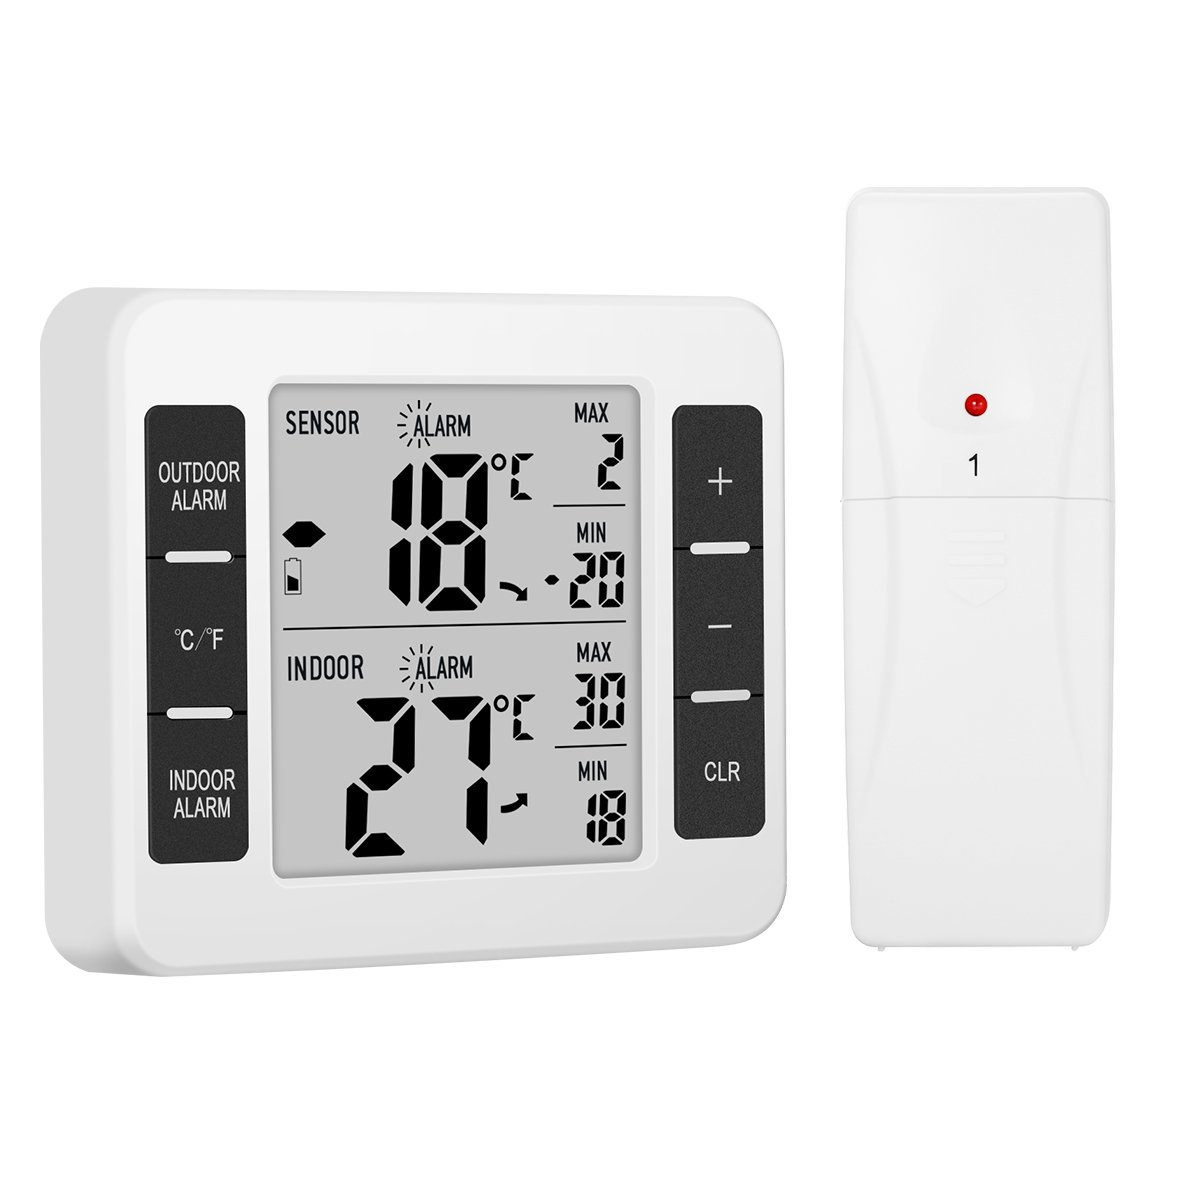 Glisteny Digital Thermometer, Indoor&Outdoor Thermometer,Home Hotel Refrigerator Thermometer for Home Comfort, Min/Max Records,With a Remote Sensor(Not Waterproof) Glisteny Co. Ltd